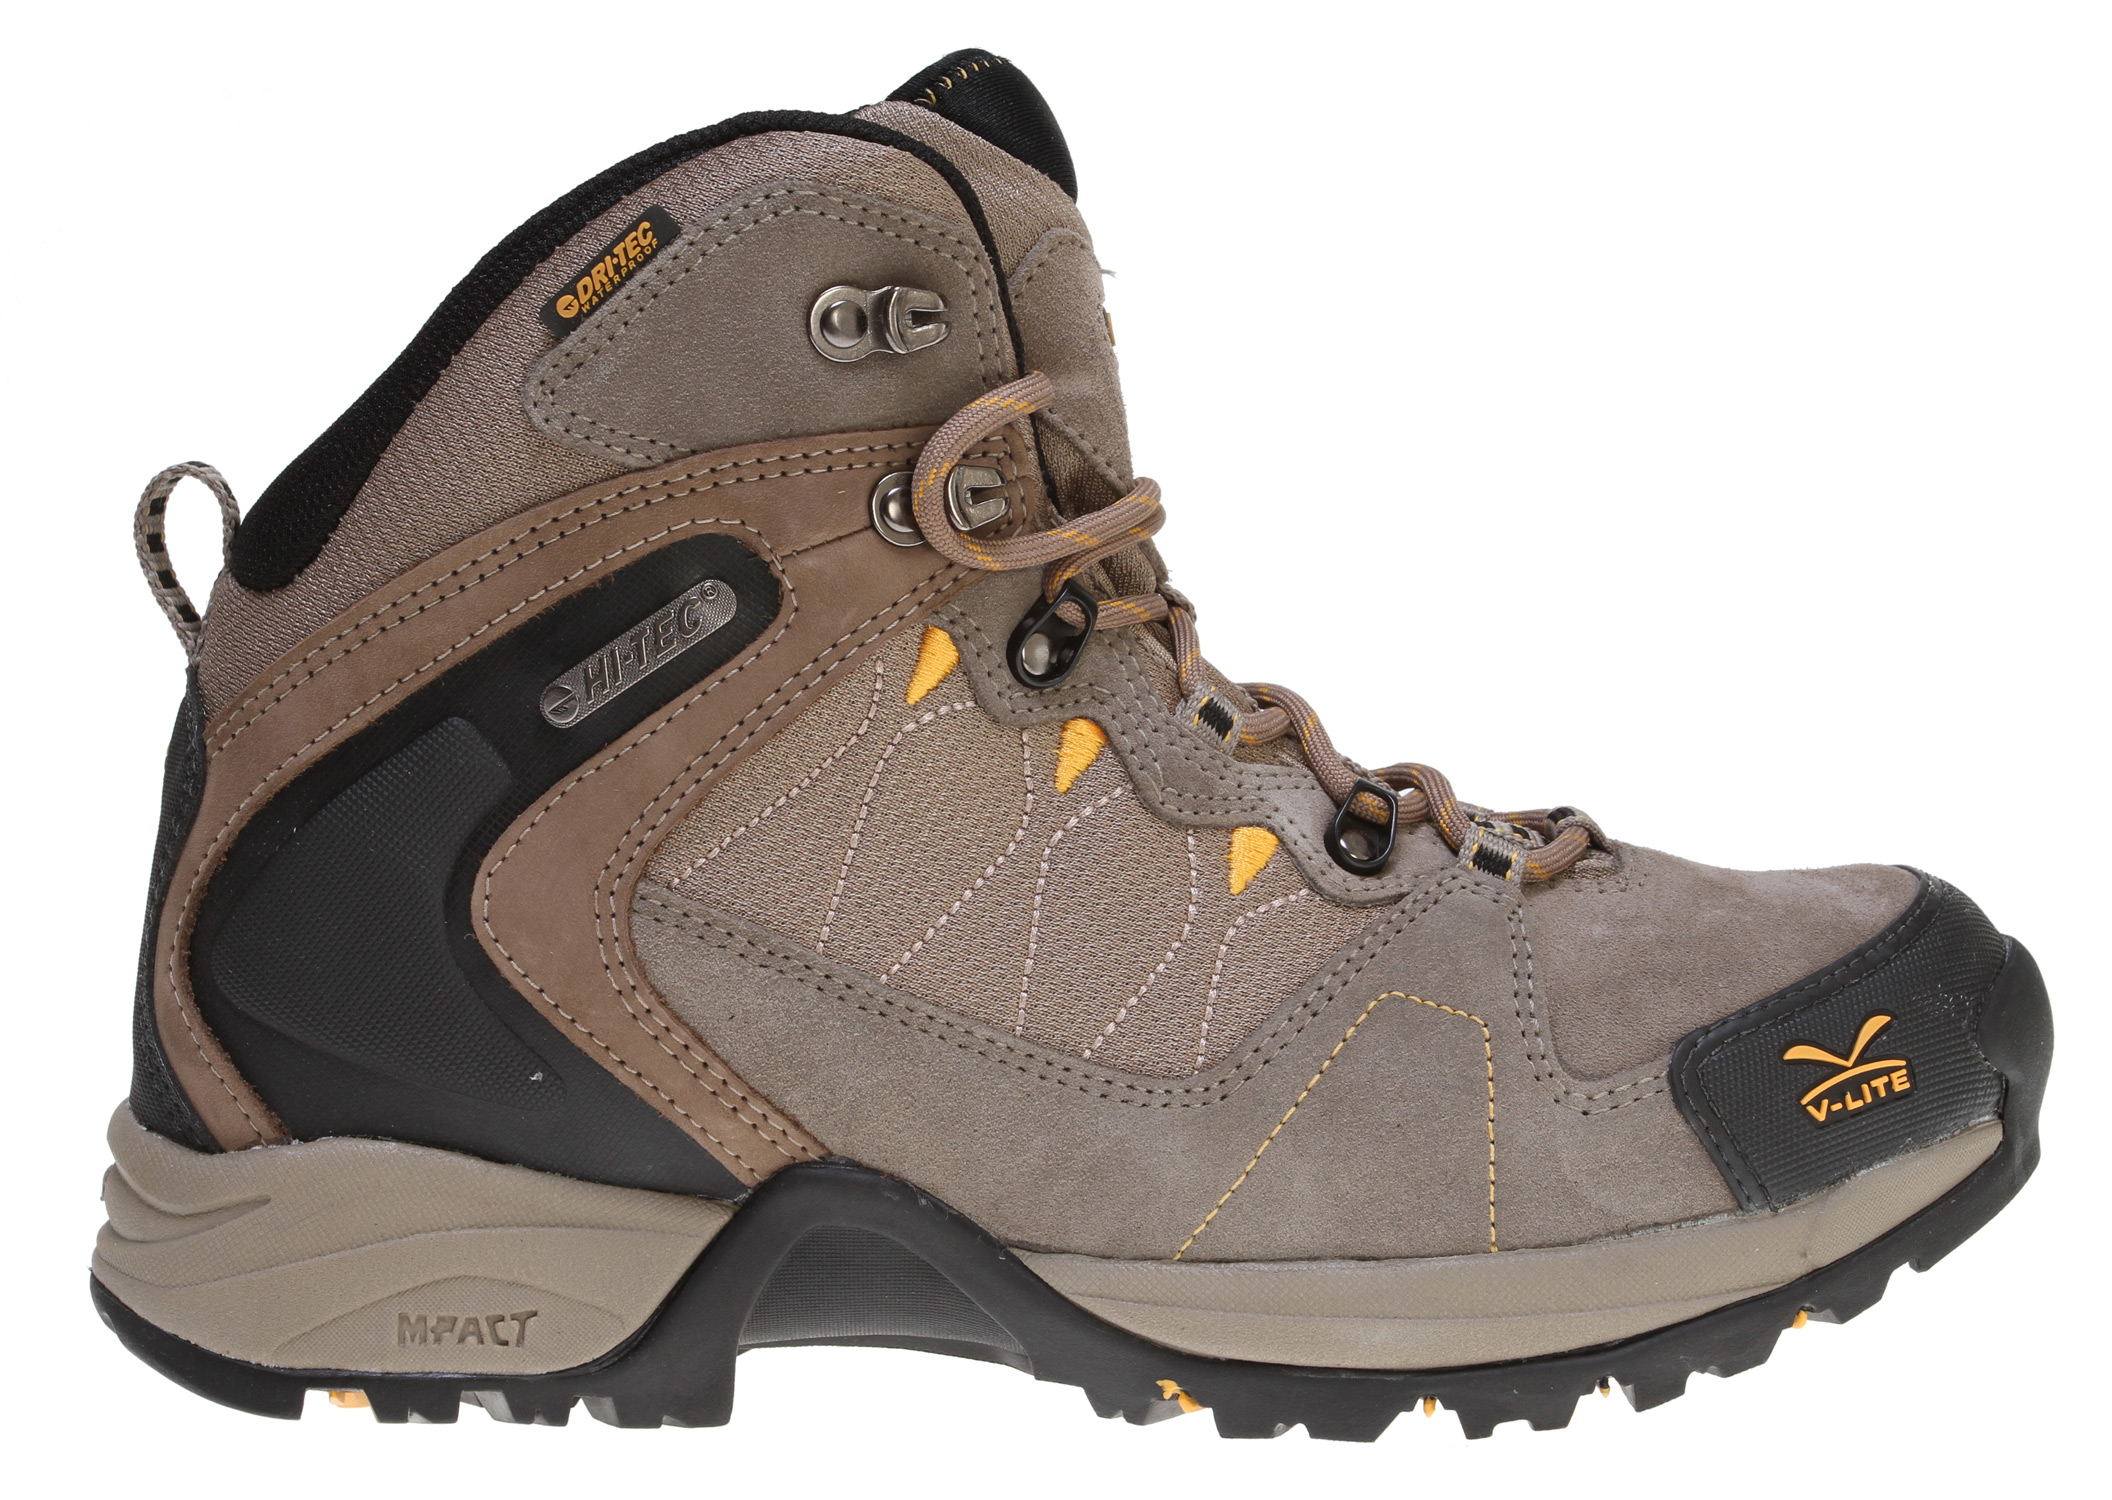 Camp and Hike Key Features of the Hitec V-Lite Buxton Mid WP Hiking Shoes Smokey Brown/Taupe/Sunflower: Waterproof suede and mesh upper Dri-Tec waterproof membrane construction V-Lite design and build technology TPU heel locking system Comfort-Tec sockliner Stabila-Flex bi-fit board CMEVA midsole for lightweight cushioning V-Lite MDT carbon rubber outsole - $79.95